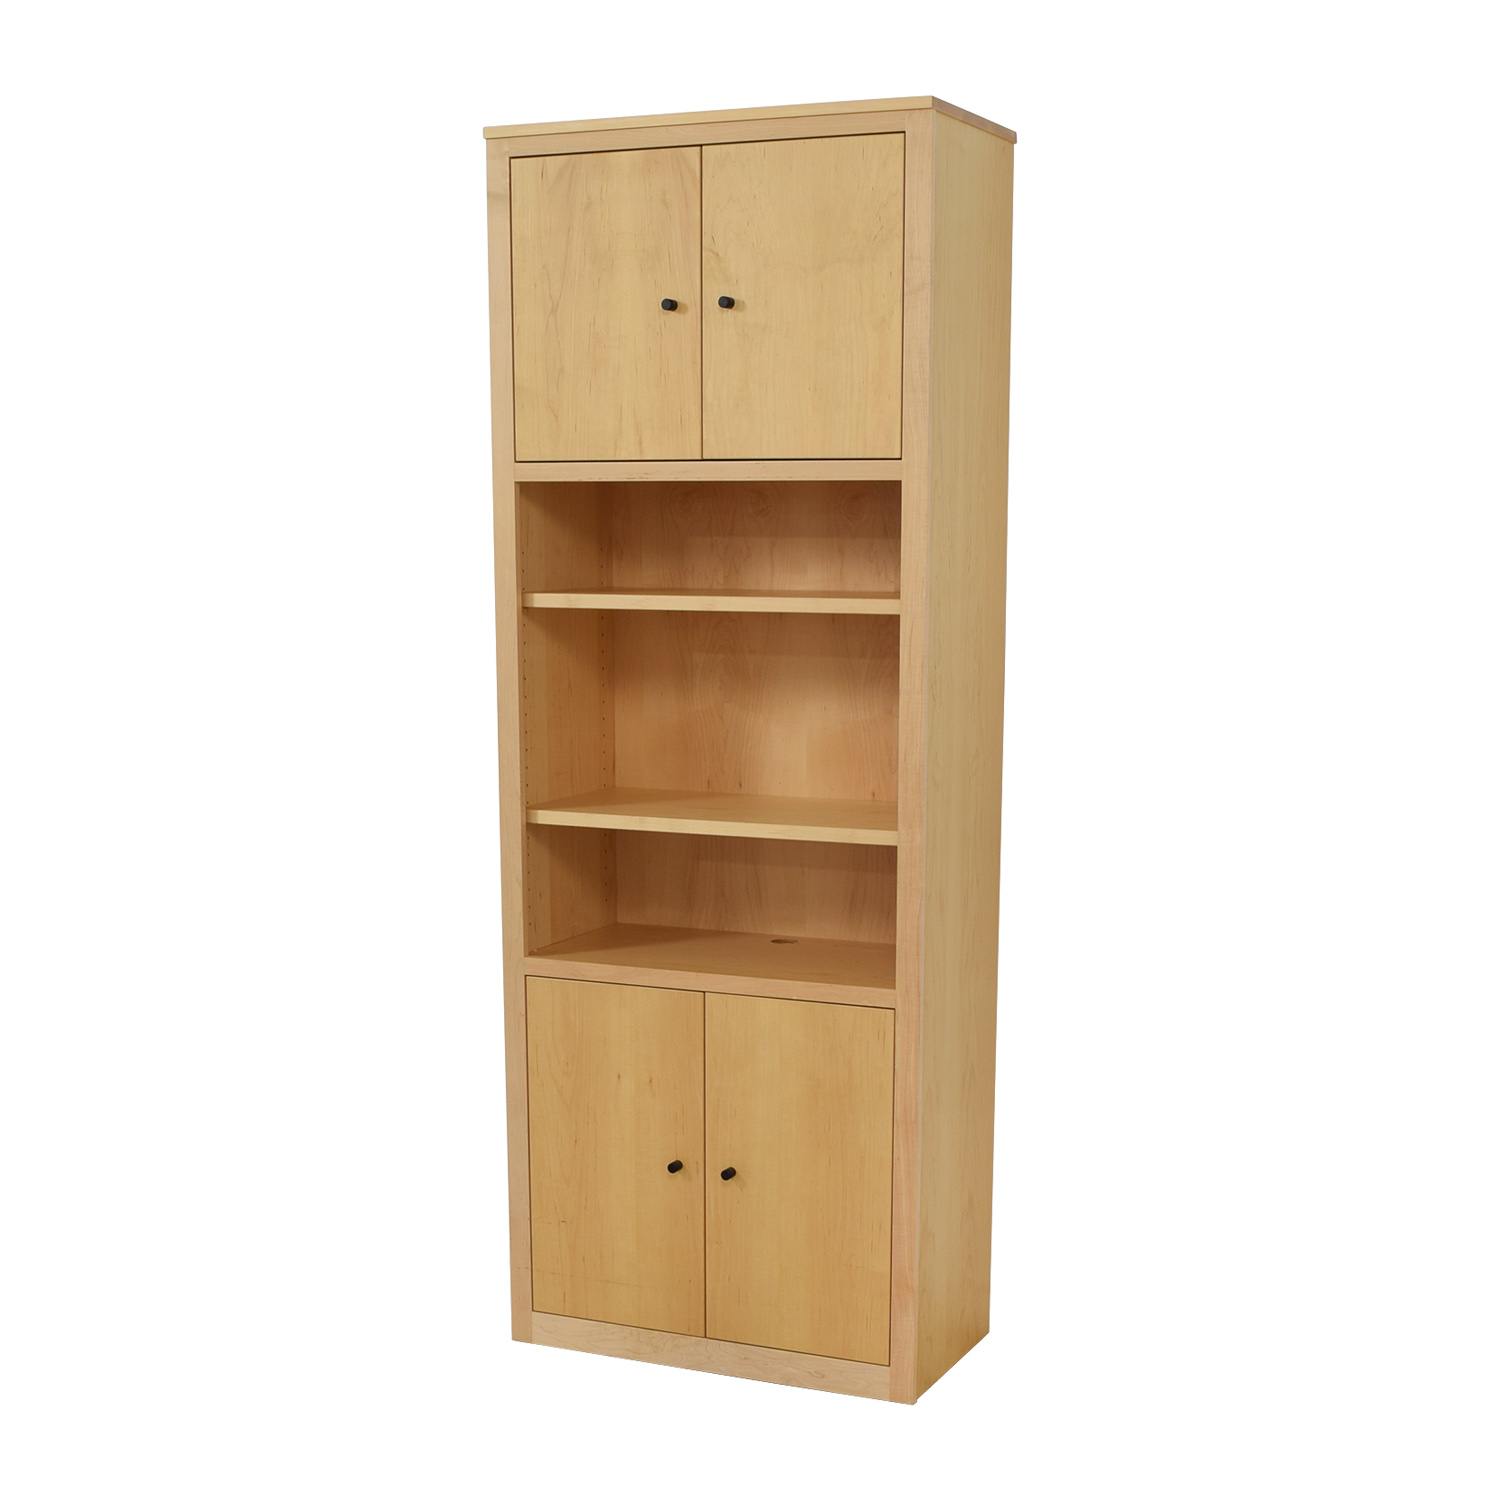 shop Room & Board Room & Board Woodwind Bookcase with Doors online